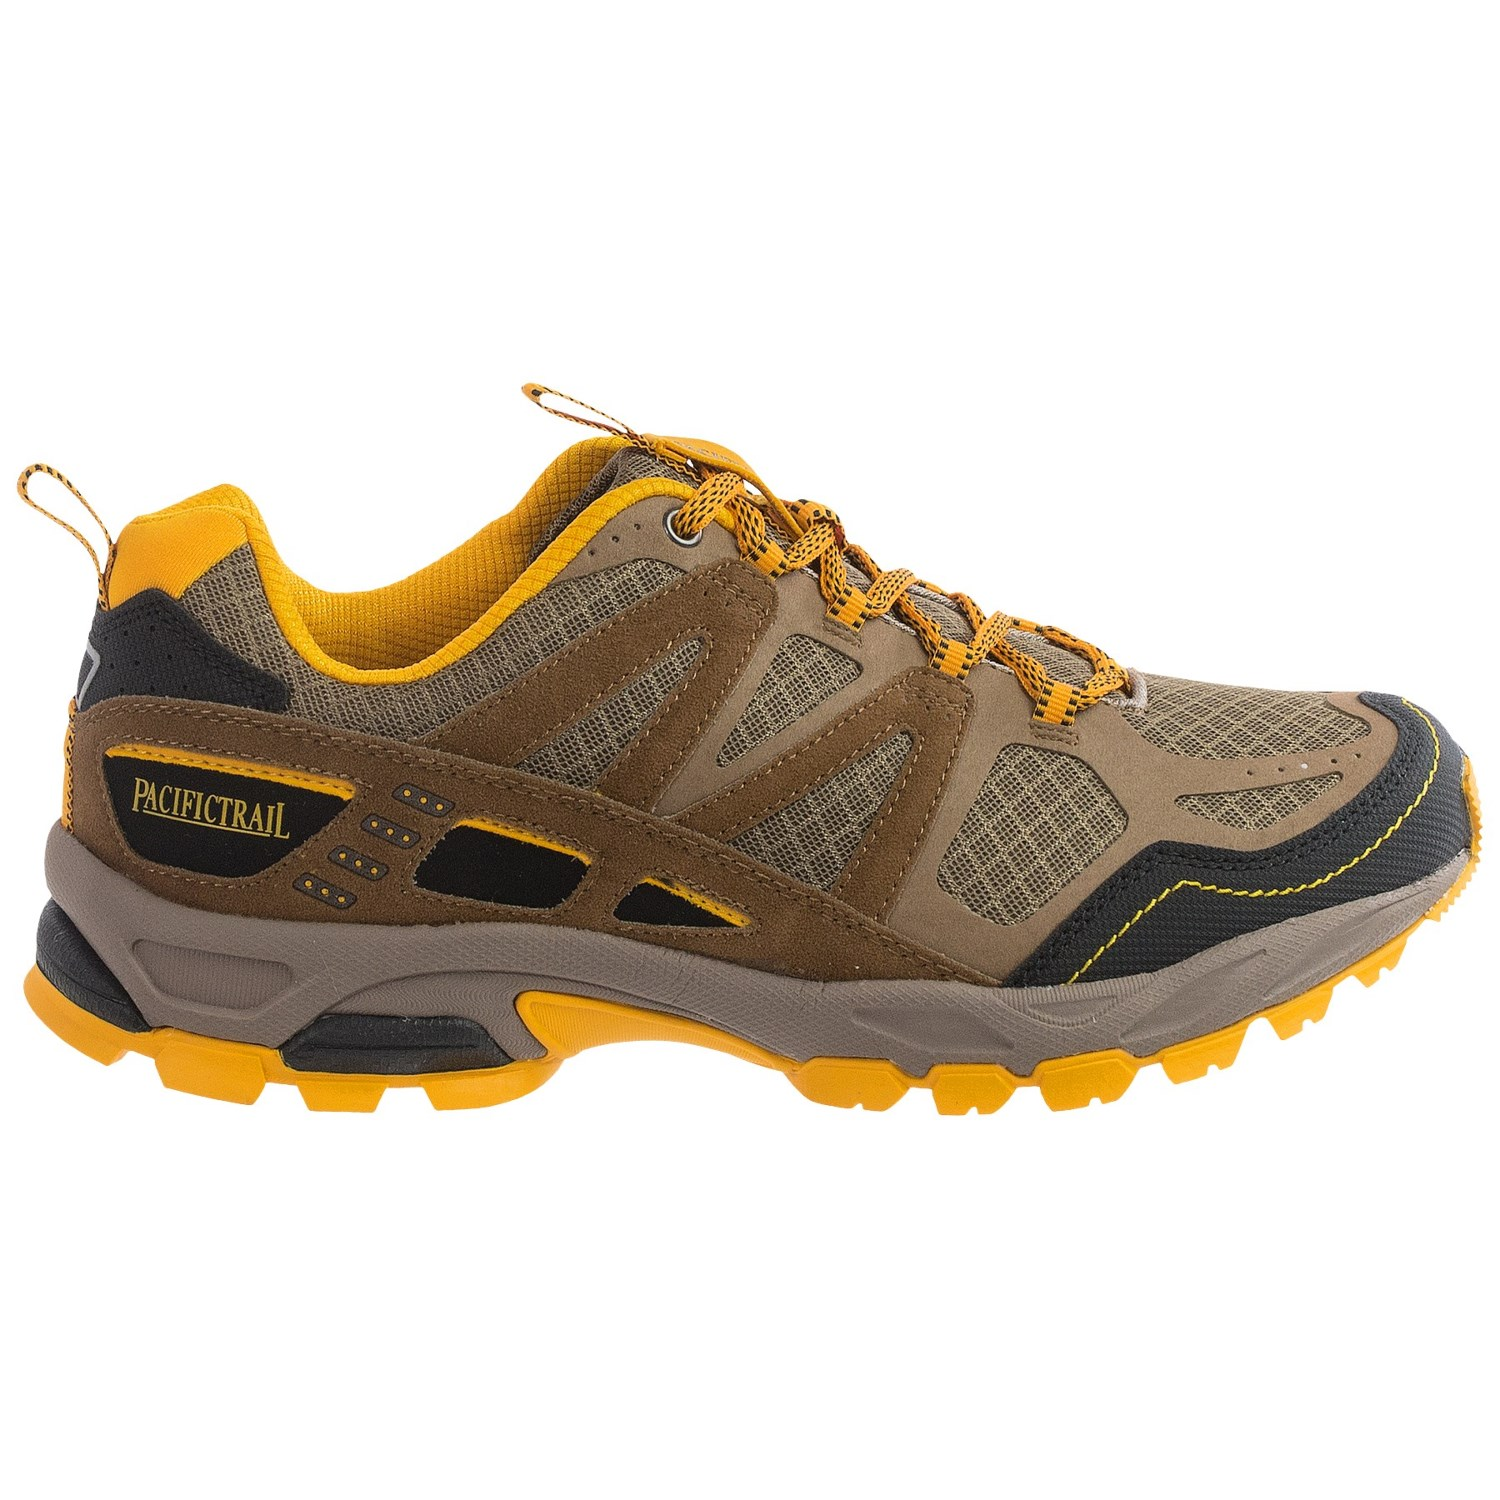 08fe9aad33989 Pacific Trail Trail Tioga Trail Running Shoes (For Men) - Save 50%